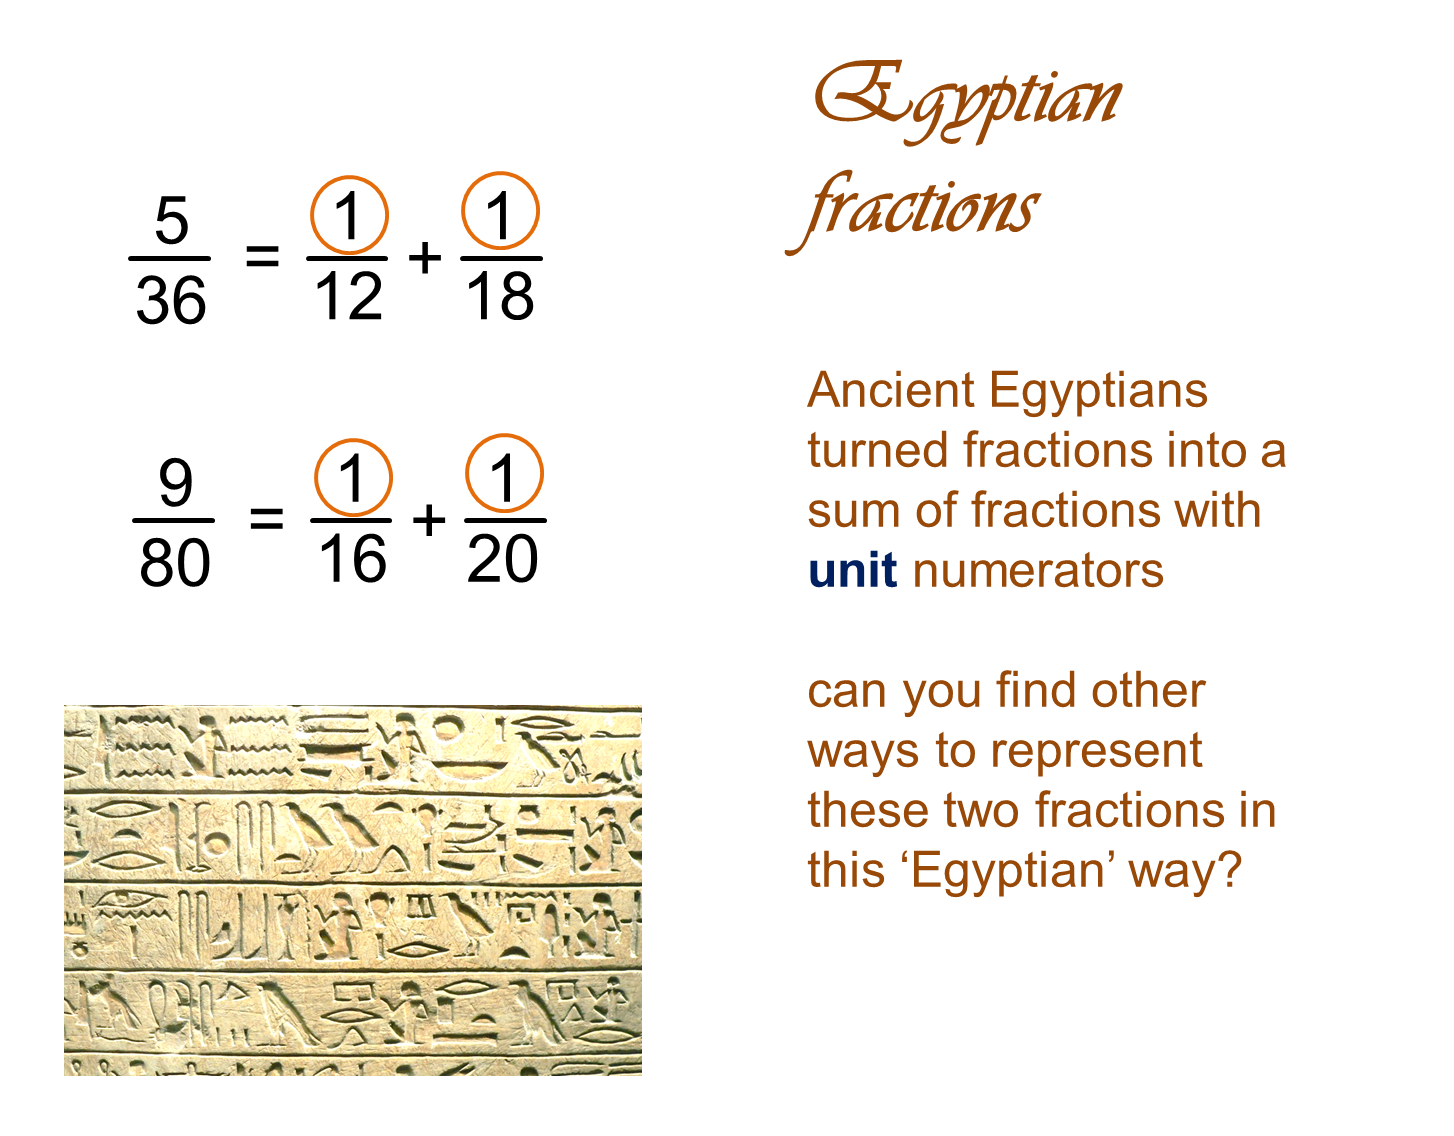 Egyptian Fractions Fractions Mathematics Education Mathematics